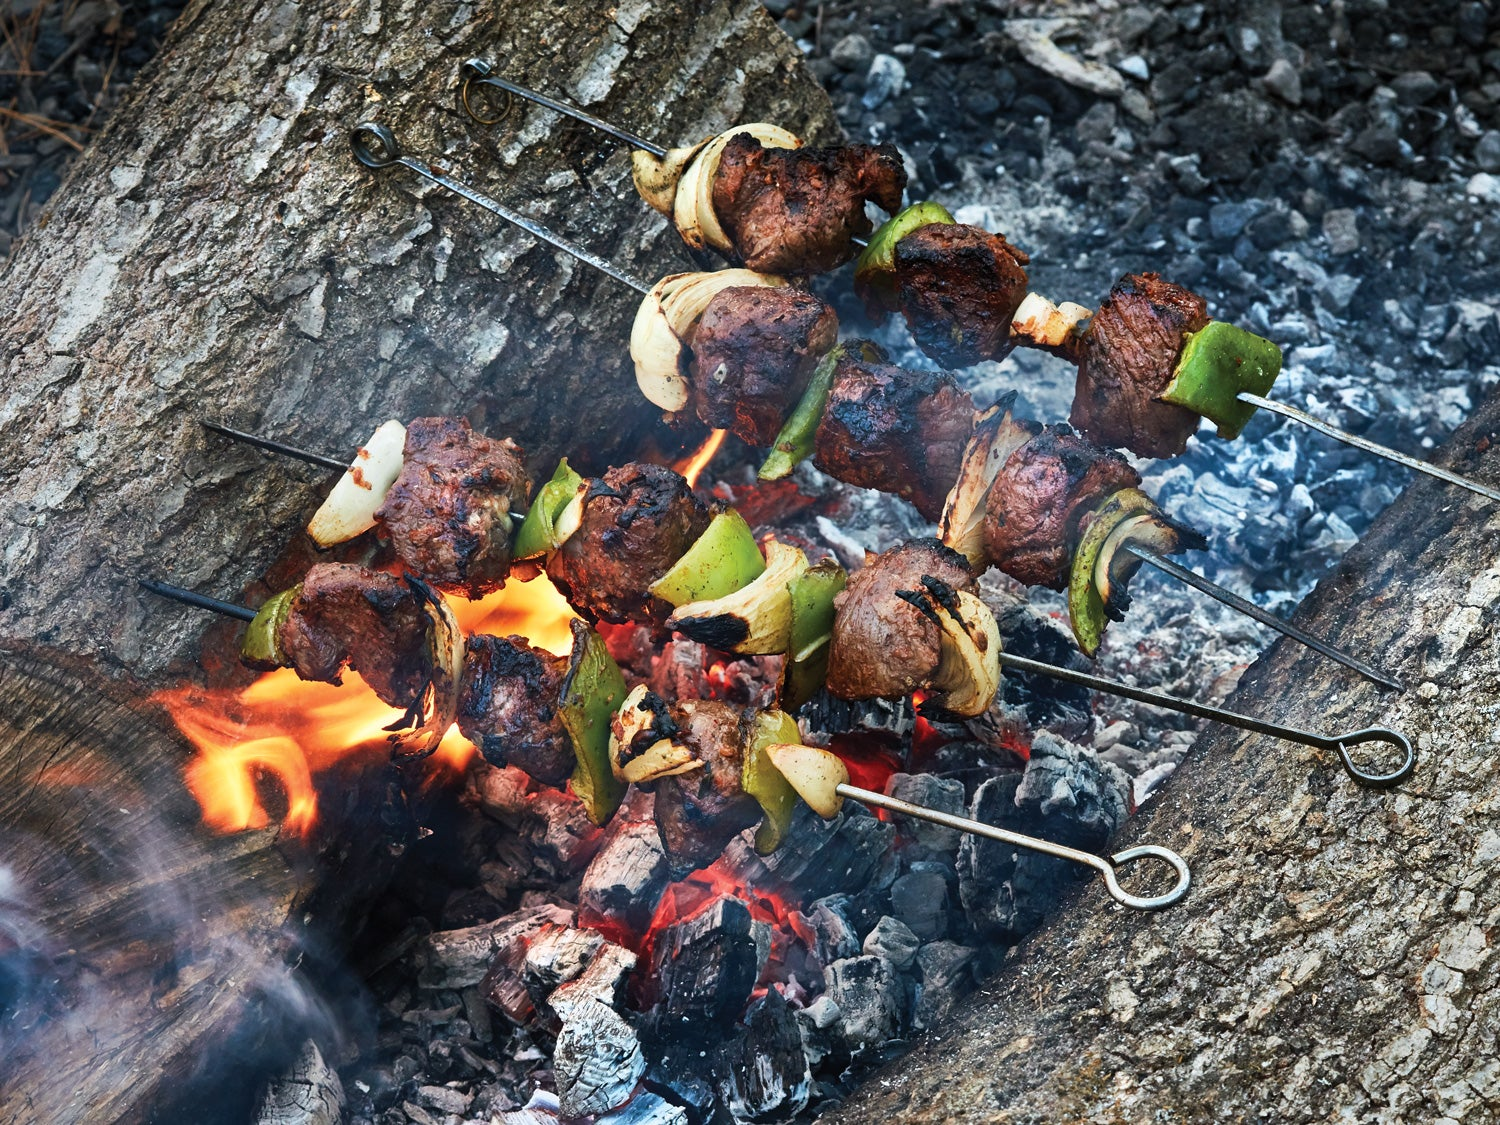 Recipe: Venison Kebabs Over an Open Flame